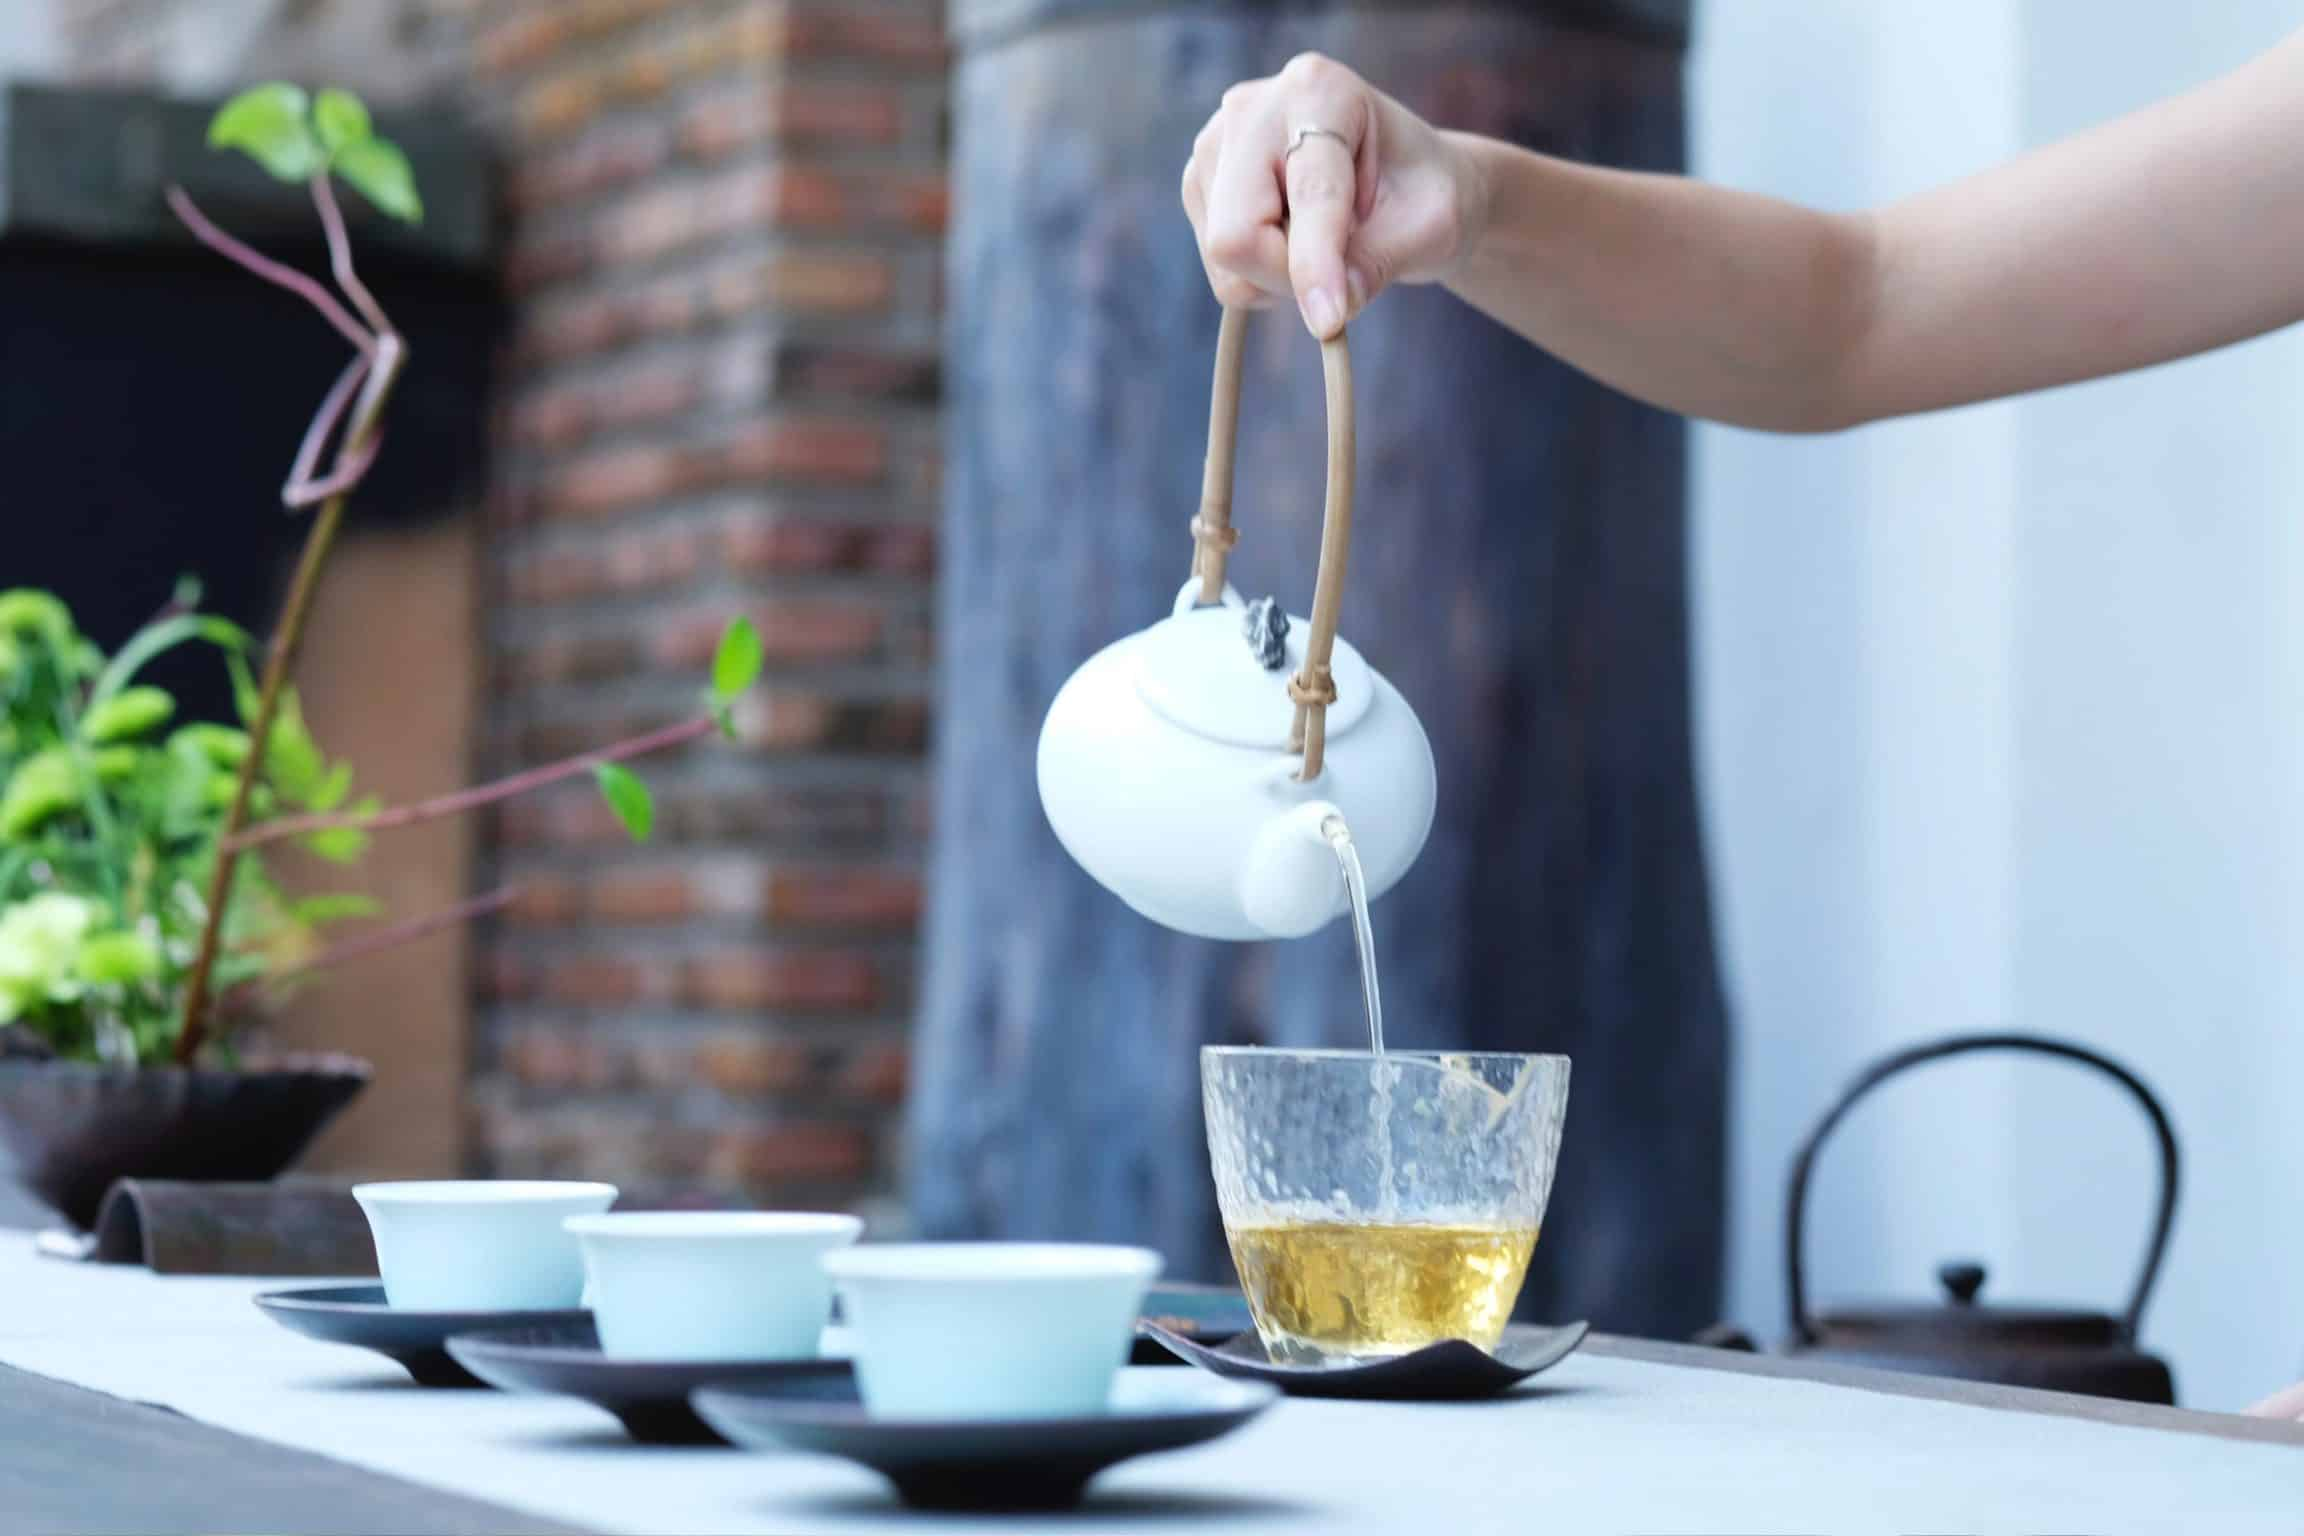 Make Your Fat Burning Tea At Home With The Help Of These Simple Ingredients